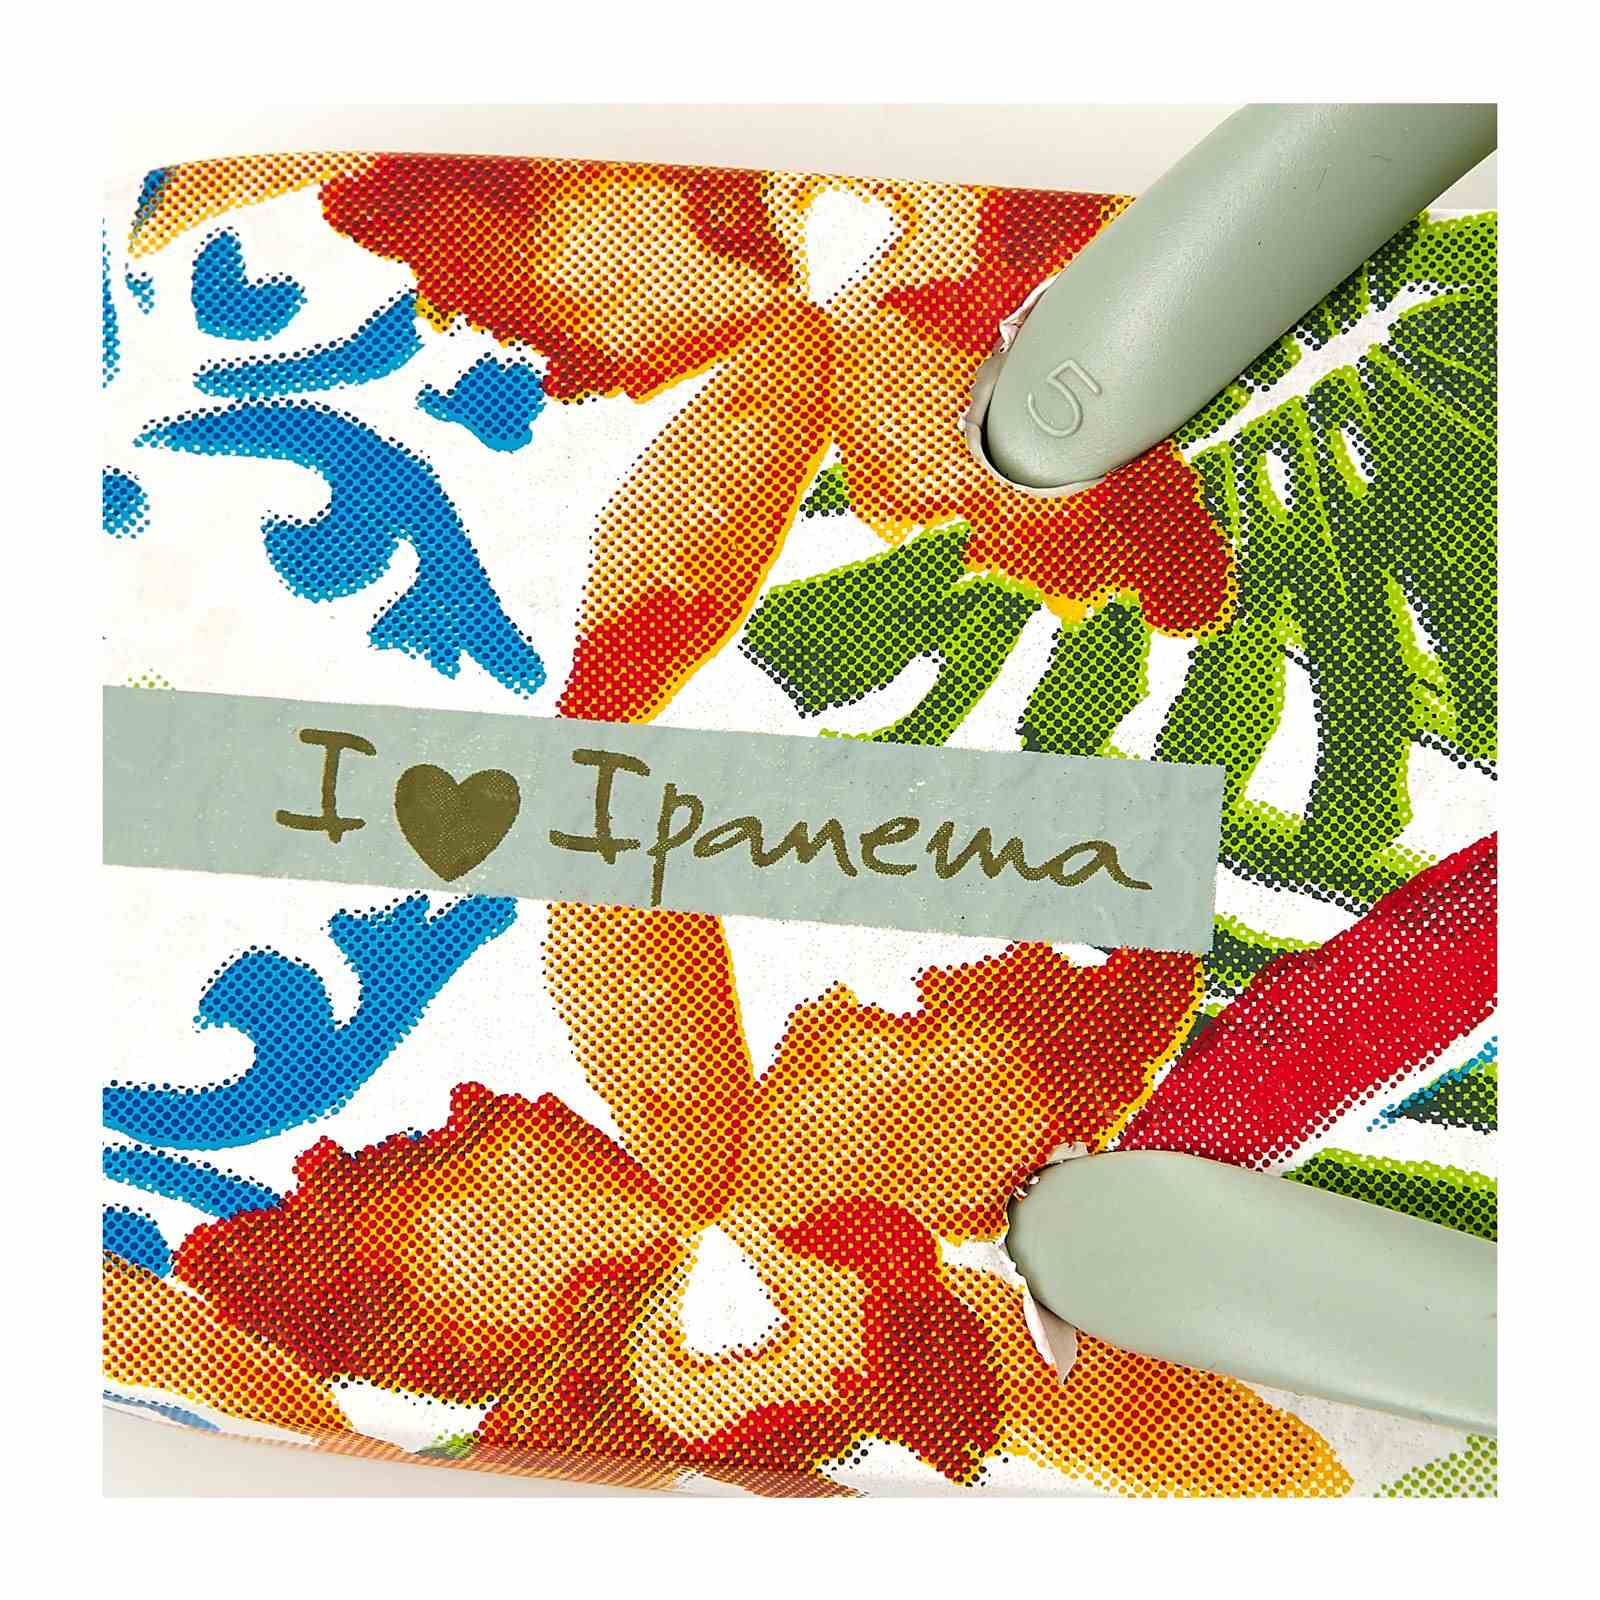 Ipanema Tongs Ipanema Blanc Summer Tongs Blanc Ipanema Summer Tongs Summer AwaApY